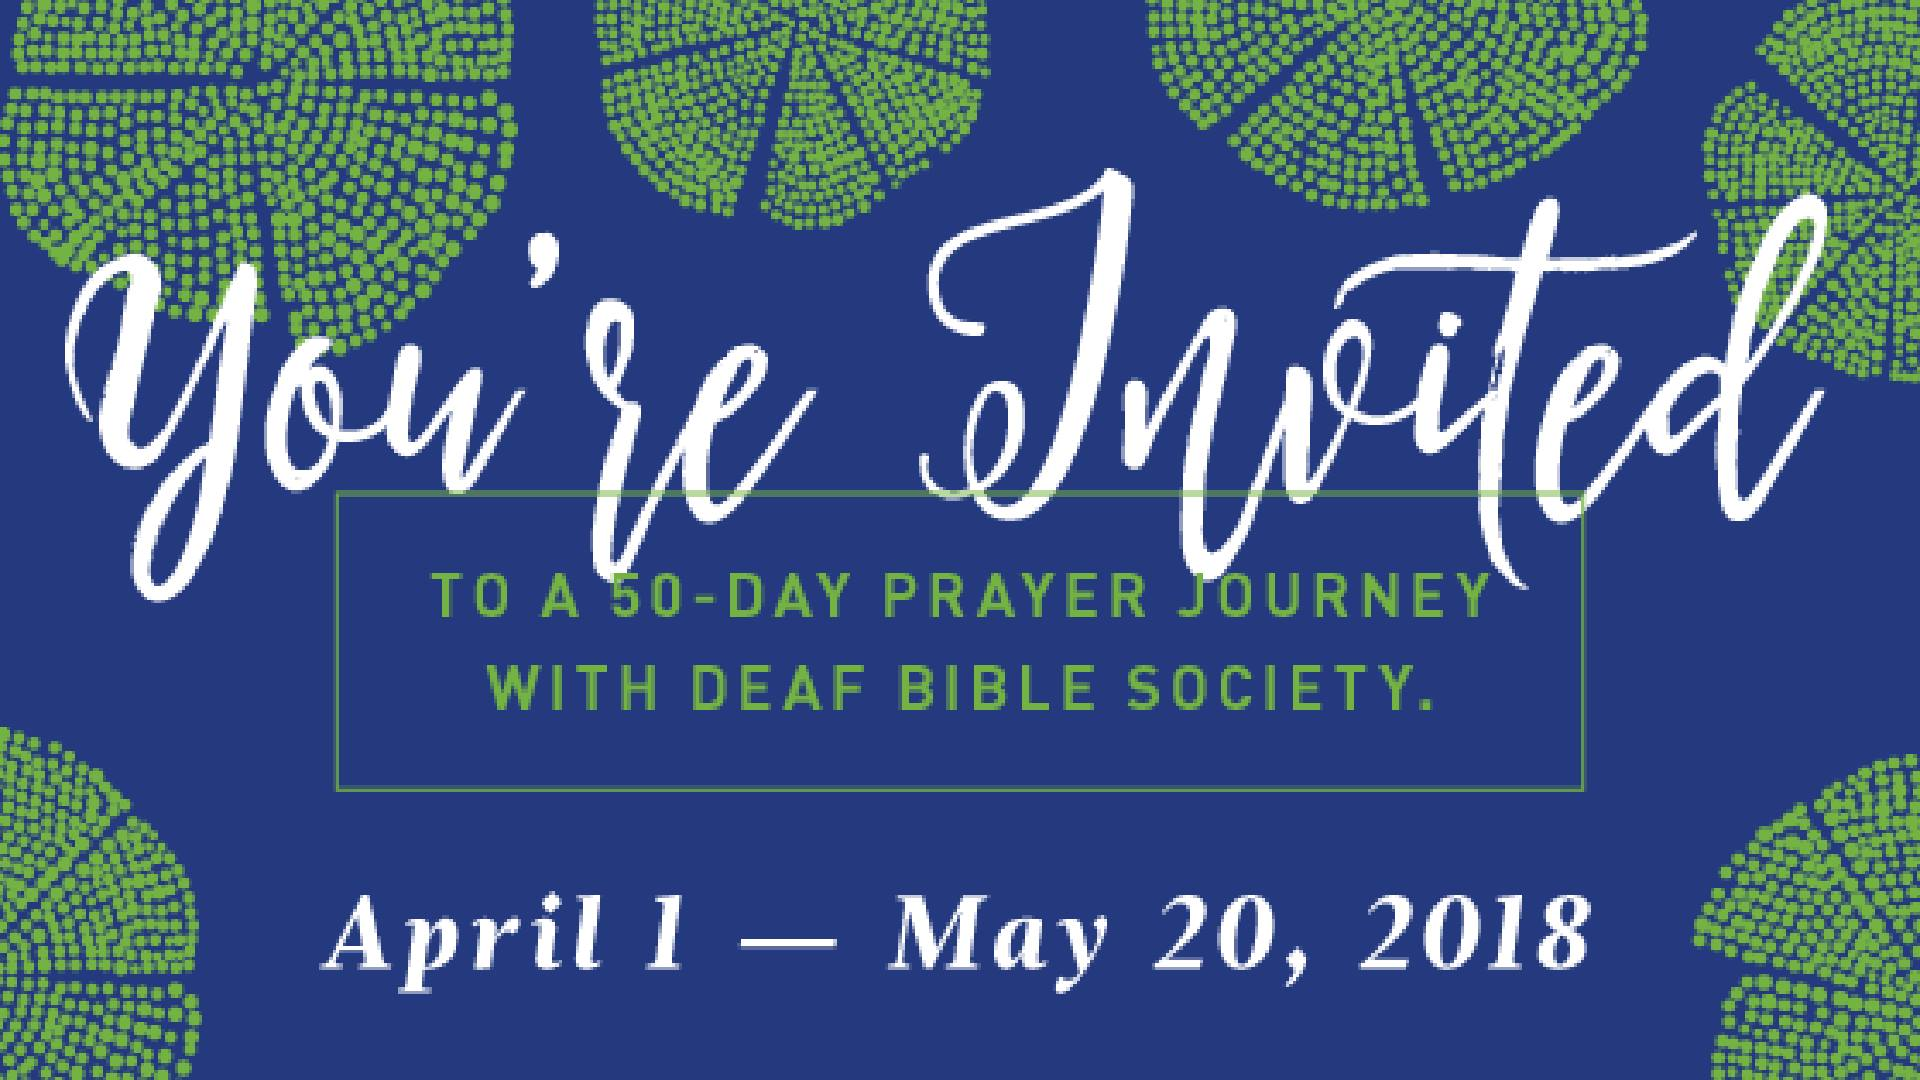 50-day prayer journey encourages Christians to pray for the Deaf